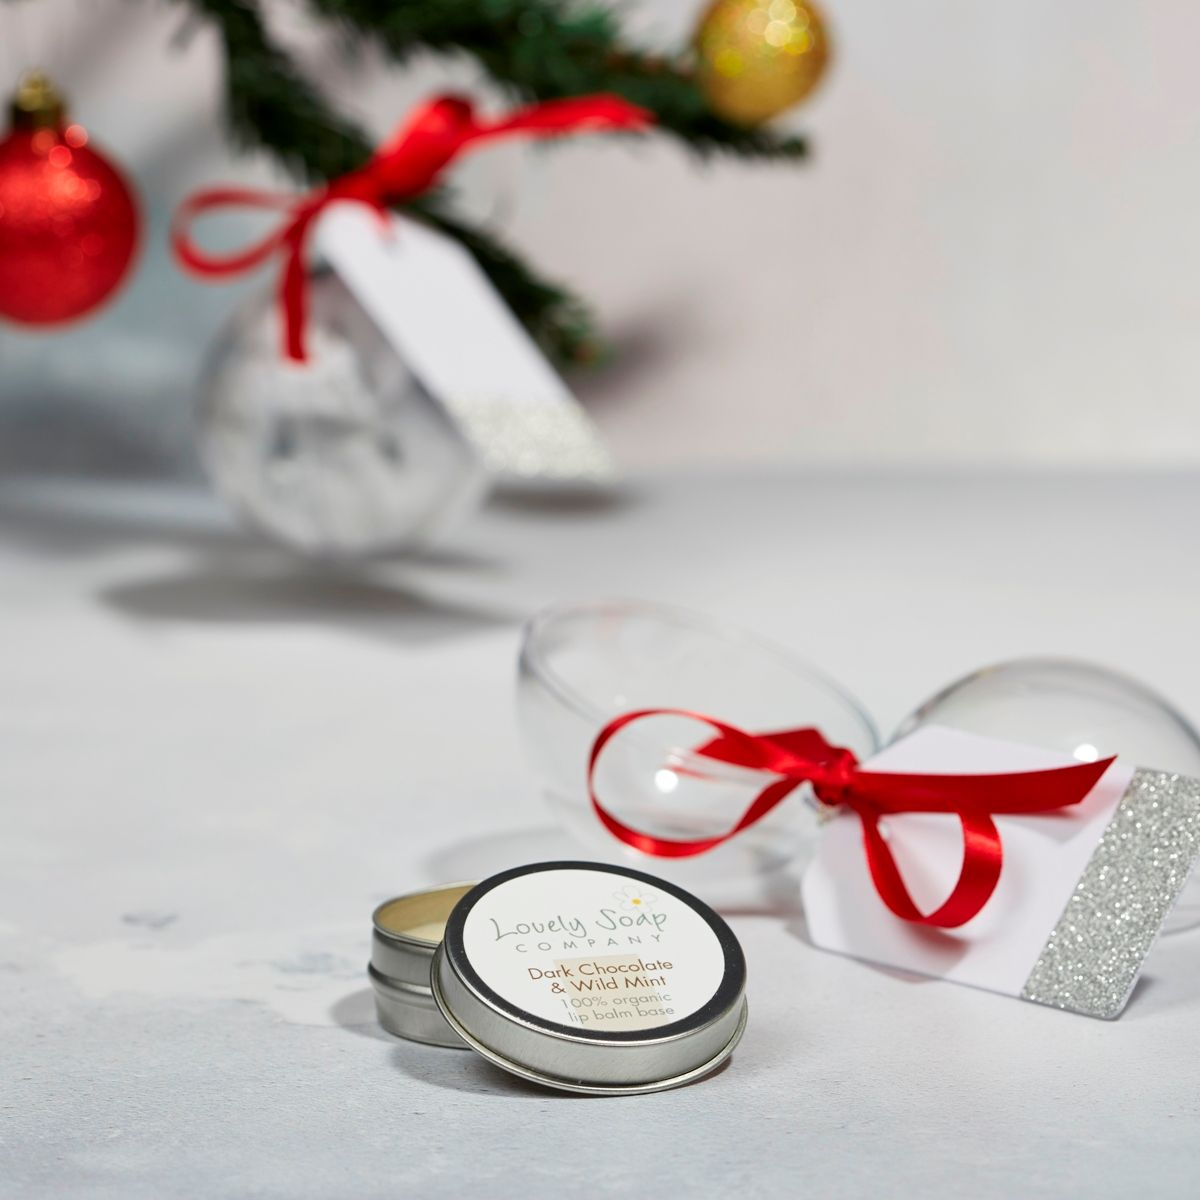 Xmas lip balm stocking filler gift